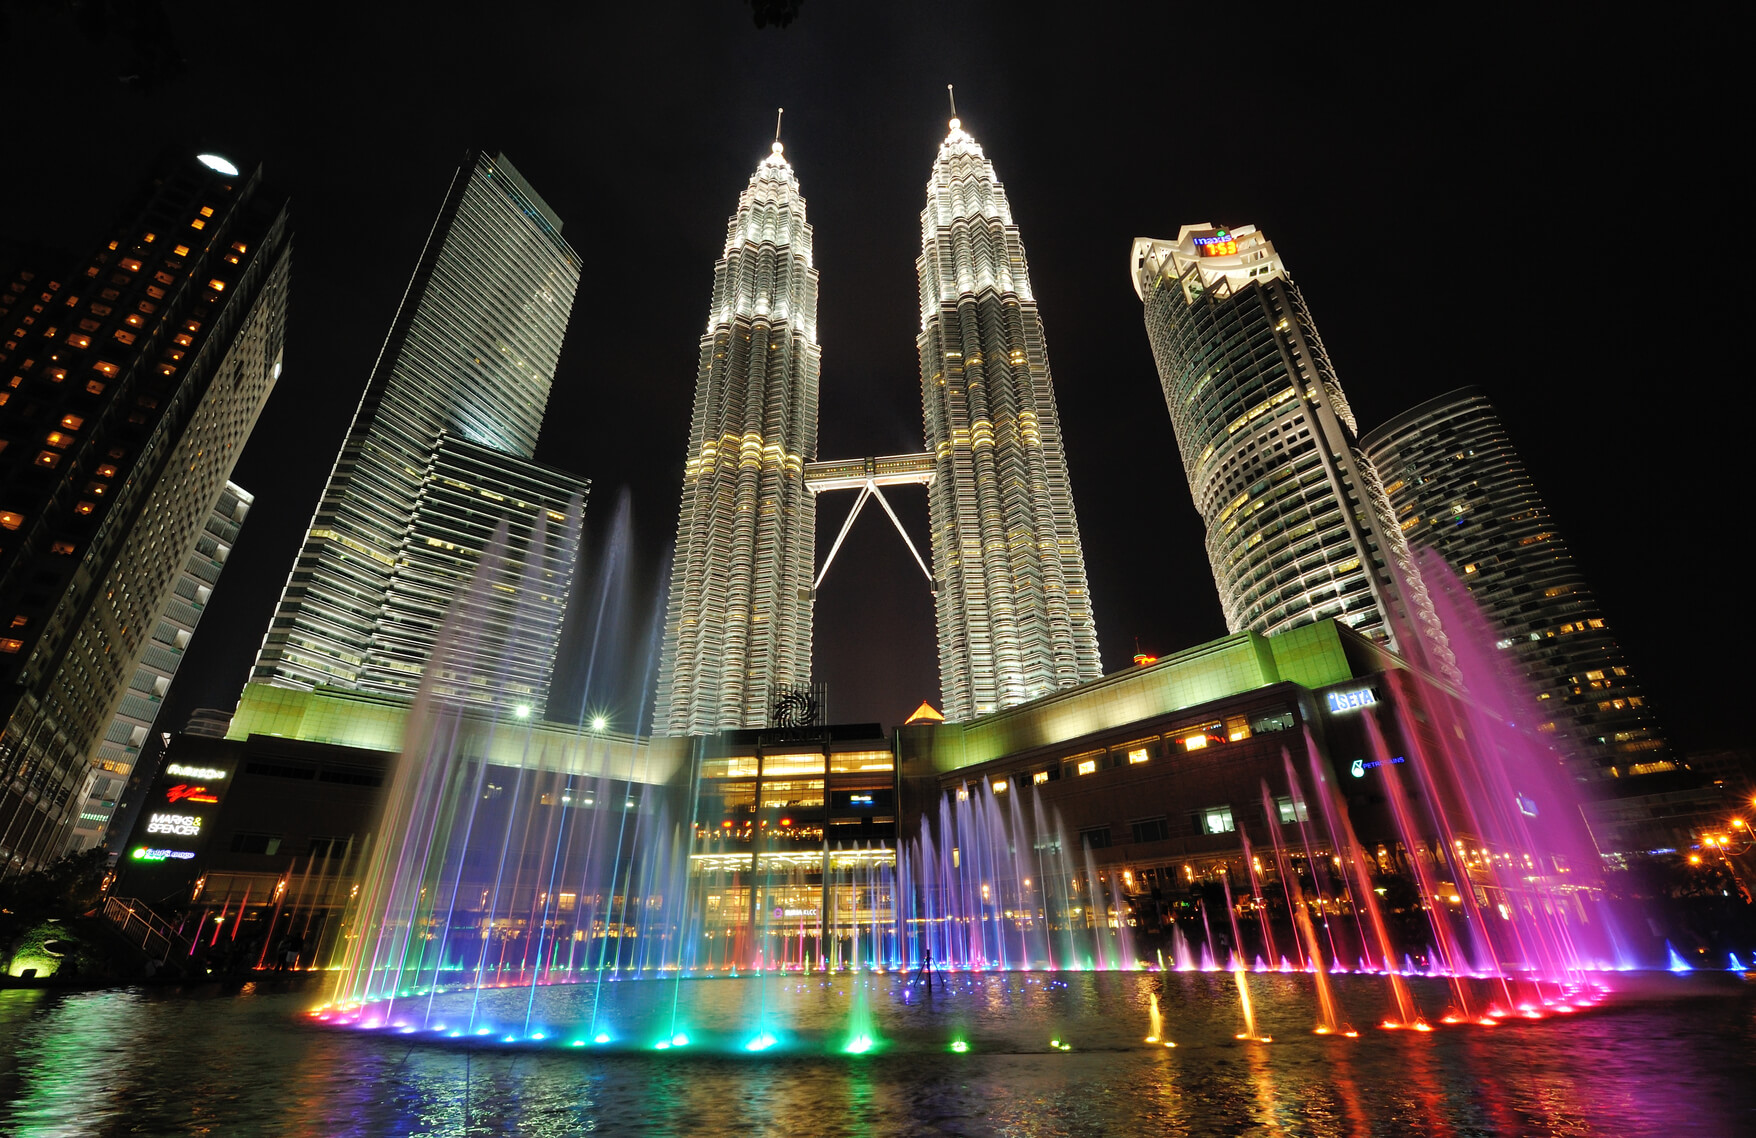 Bangalore, India to Kuala Lumpur, Malaysia for only $202 USD roundtrip